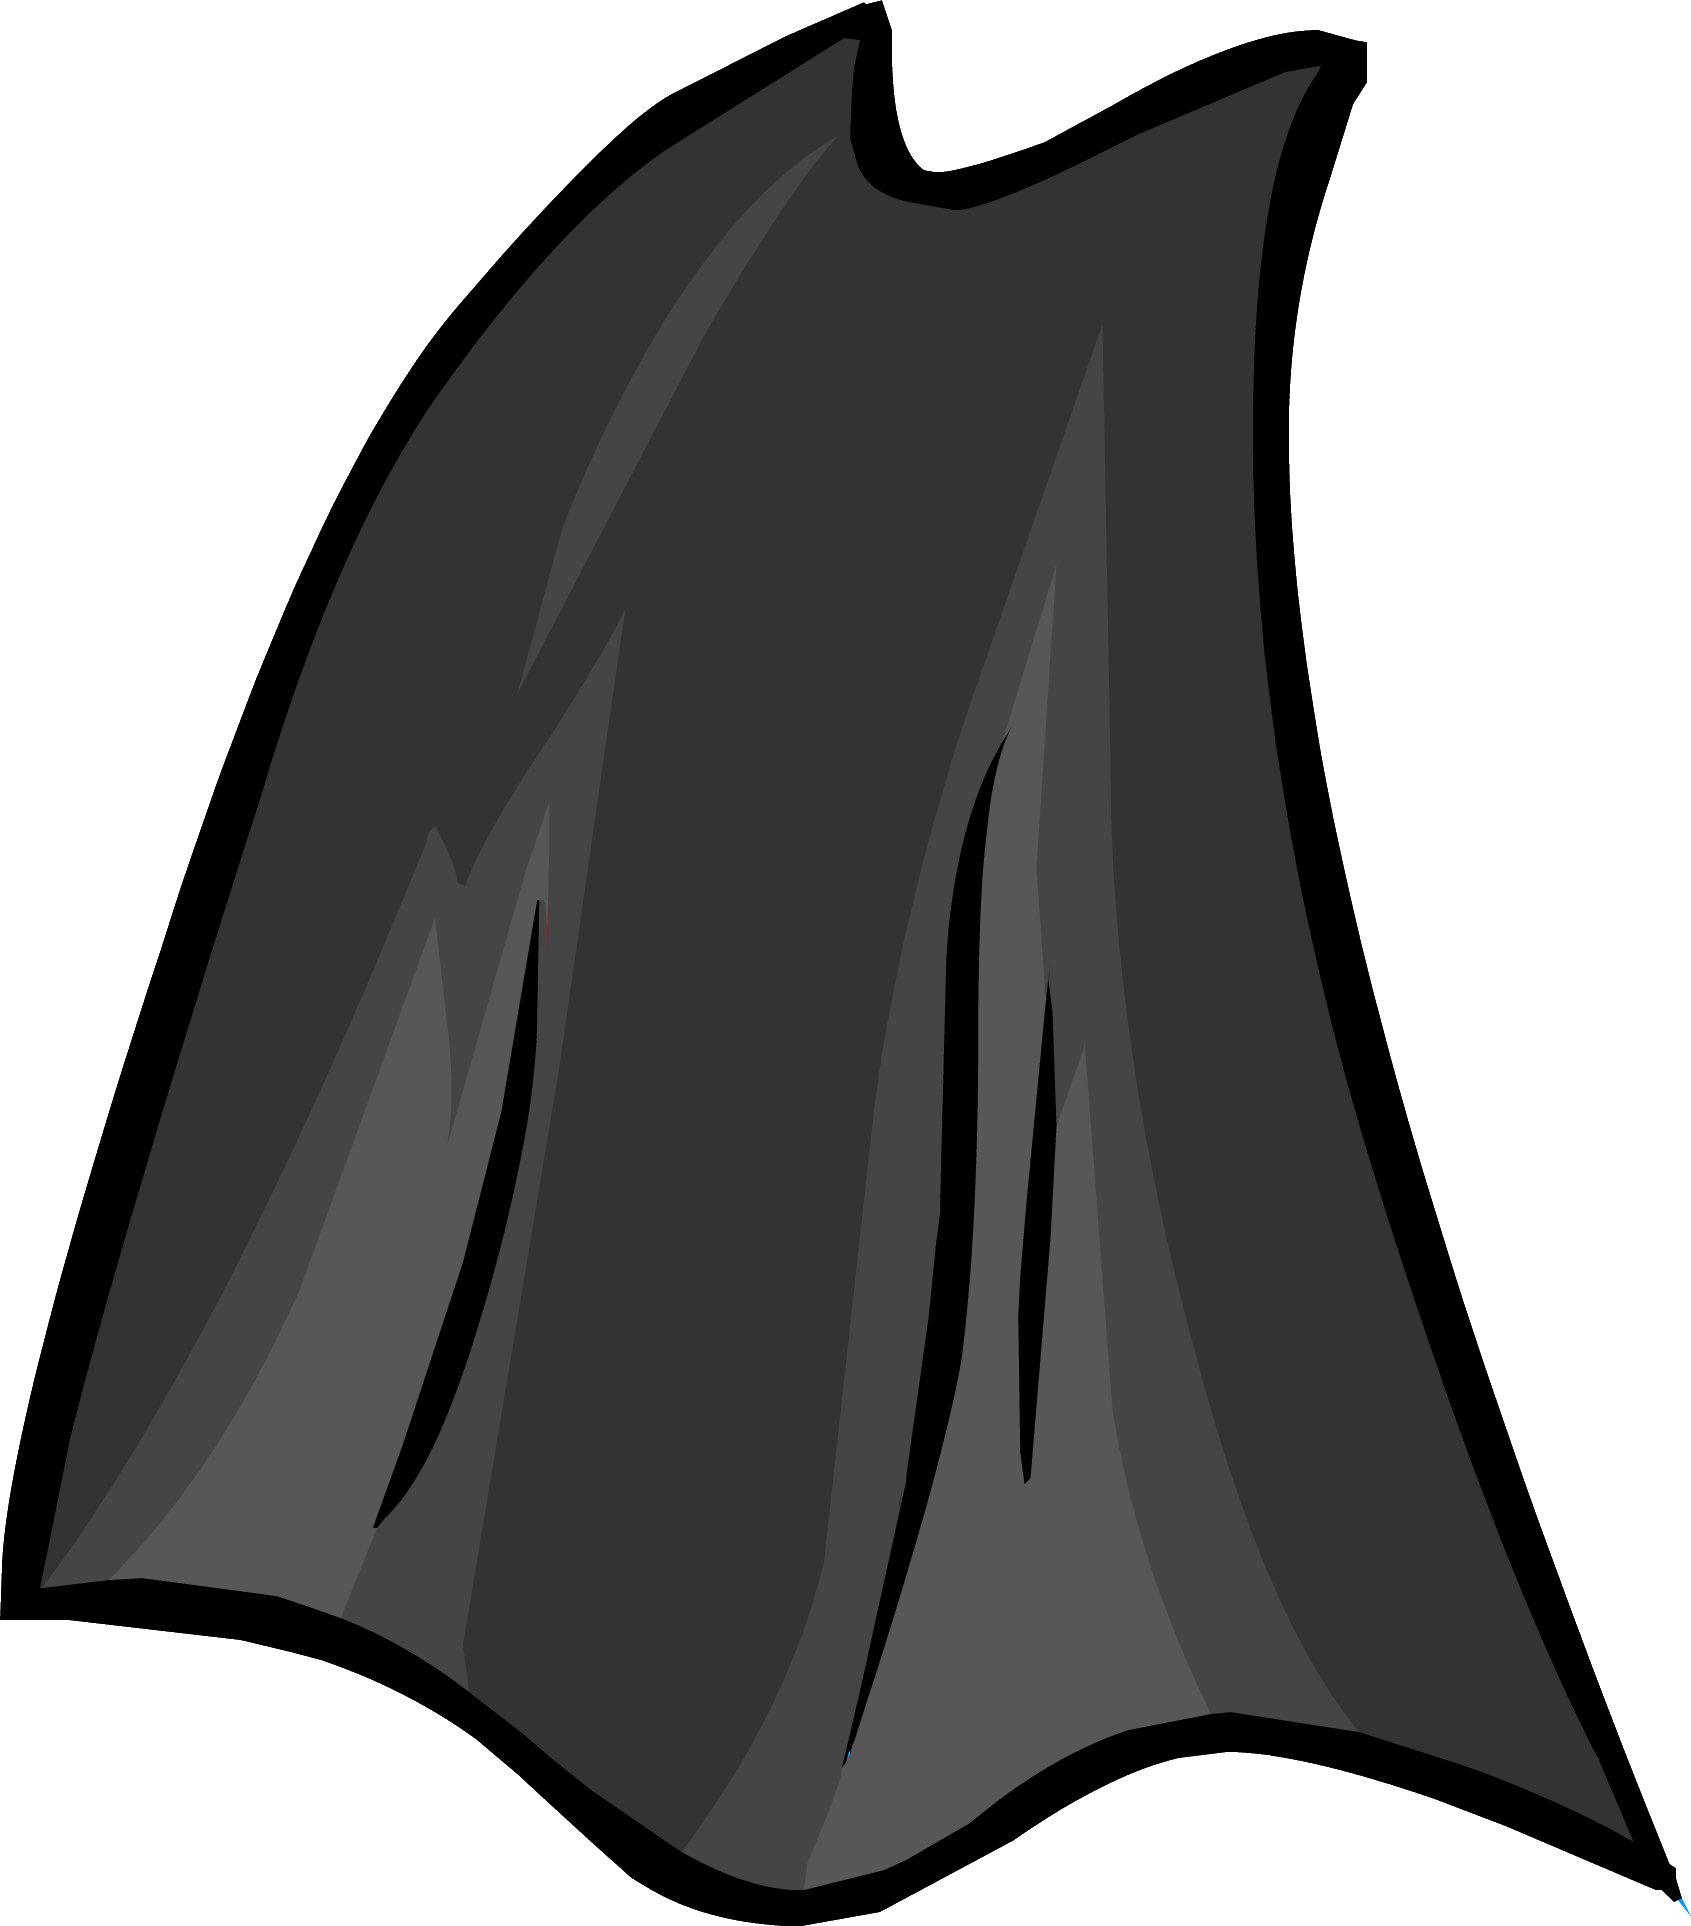 clip art library library Club penguin rewritten wiki. Superhero cape clipart black and white